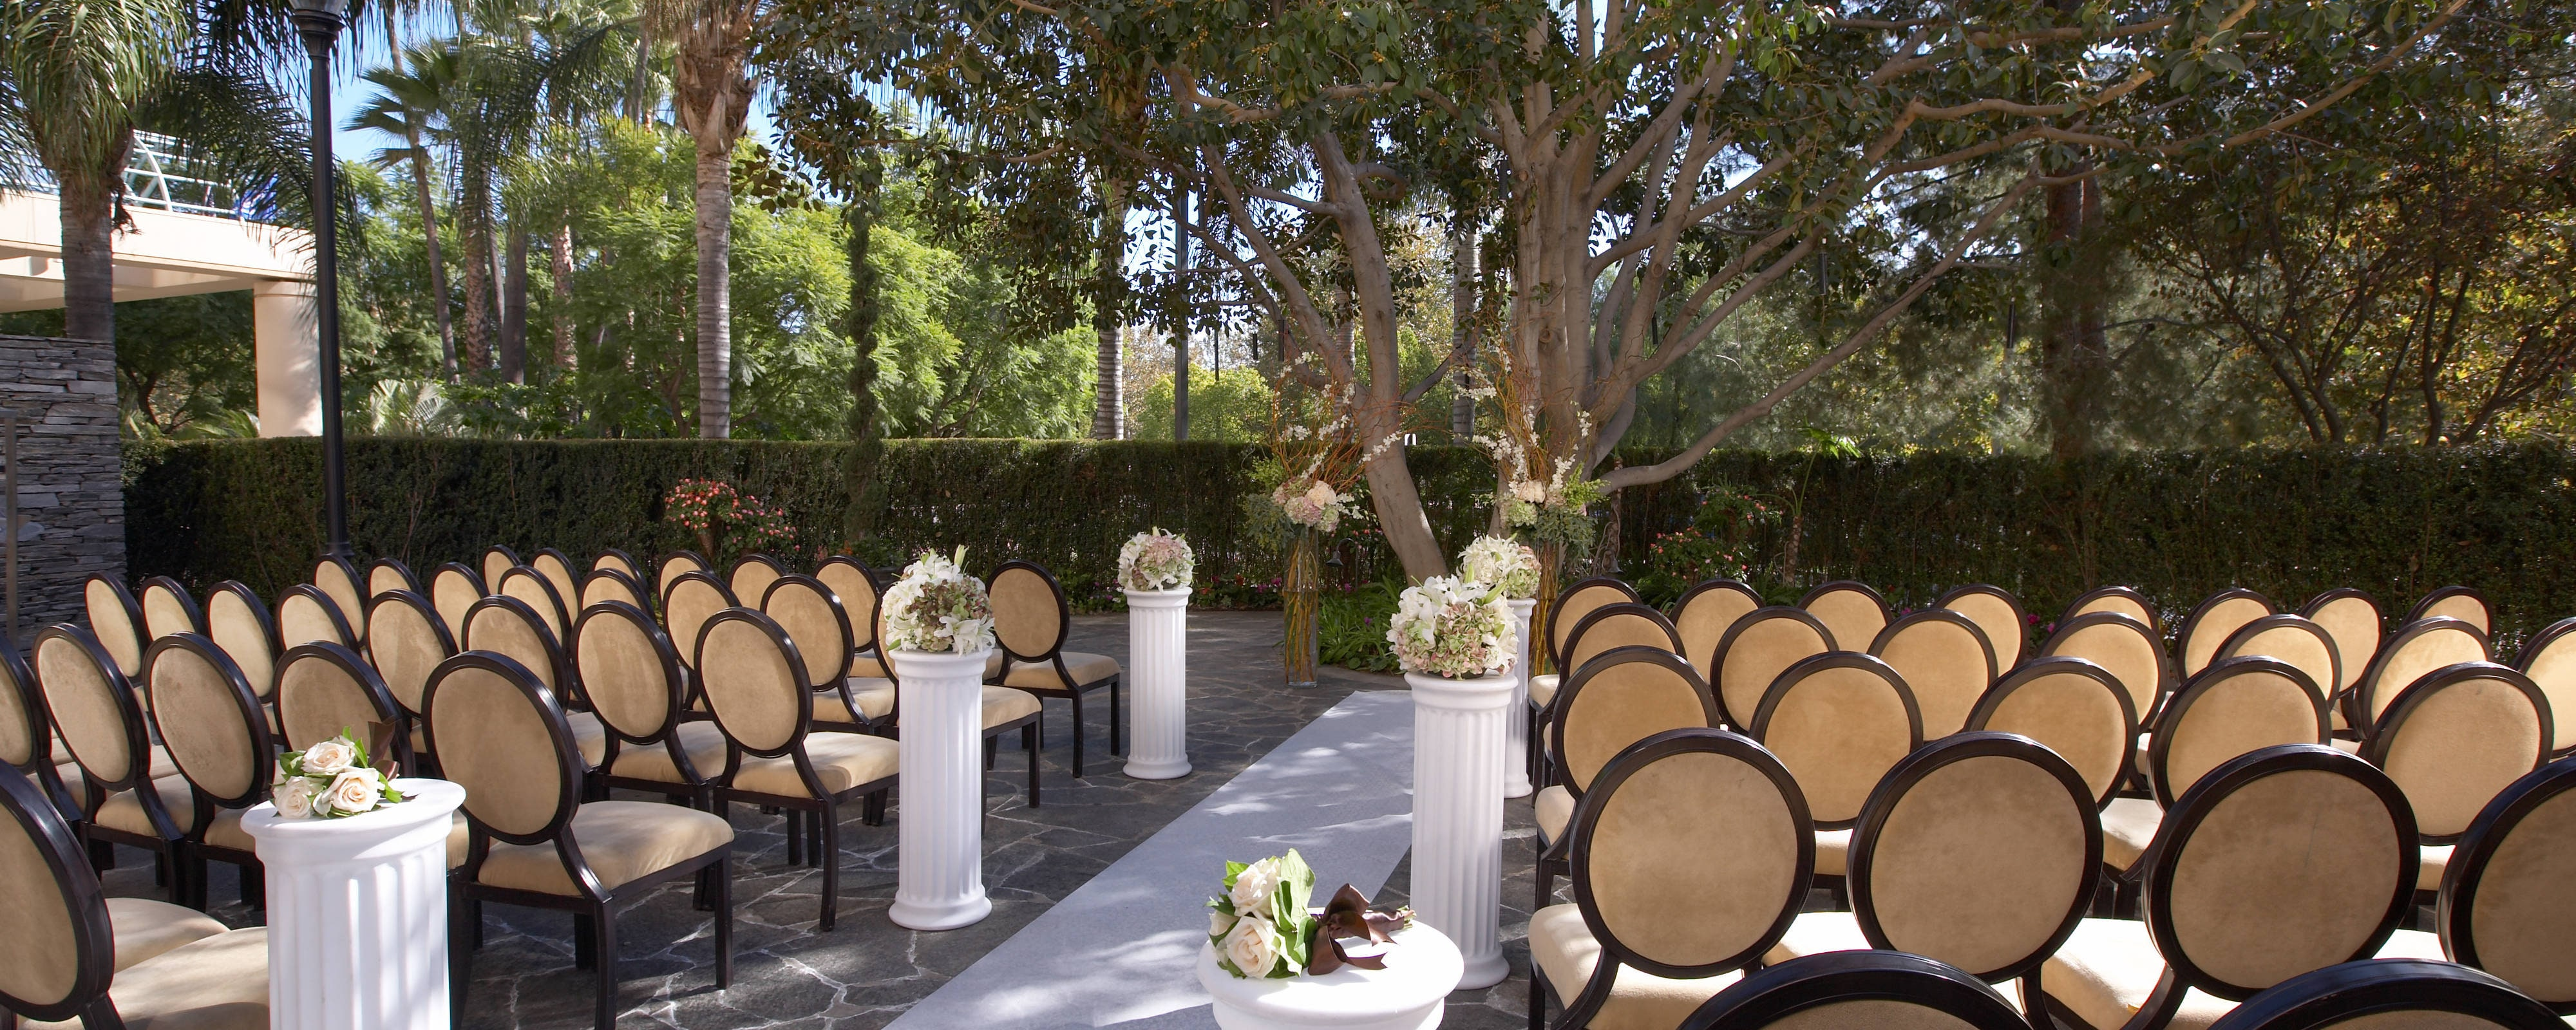 Wedding Planning In Pomona At The Sheraton Fairplex Hotel Conference Center